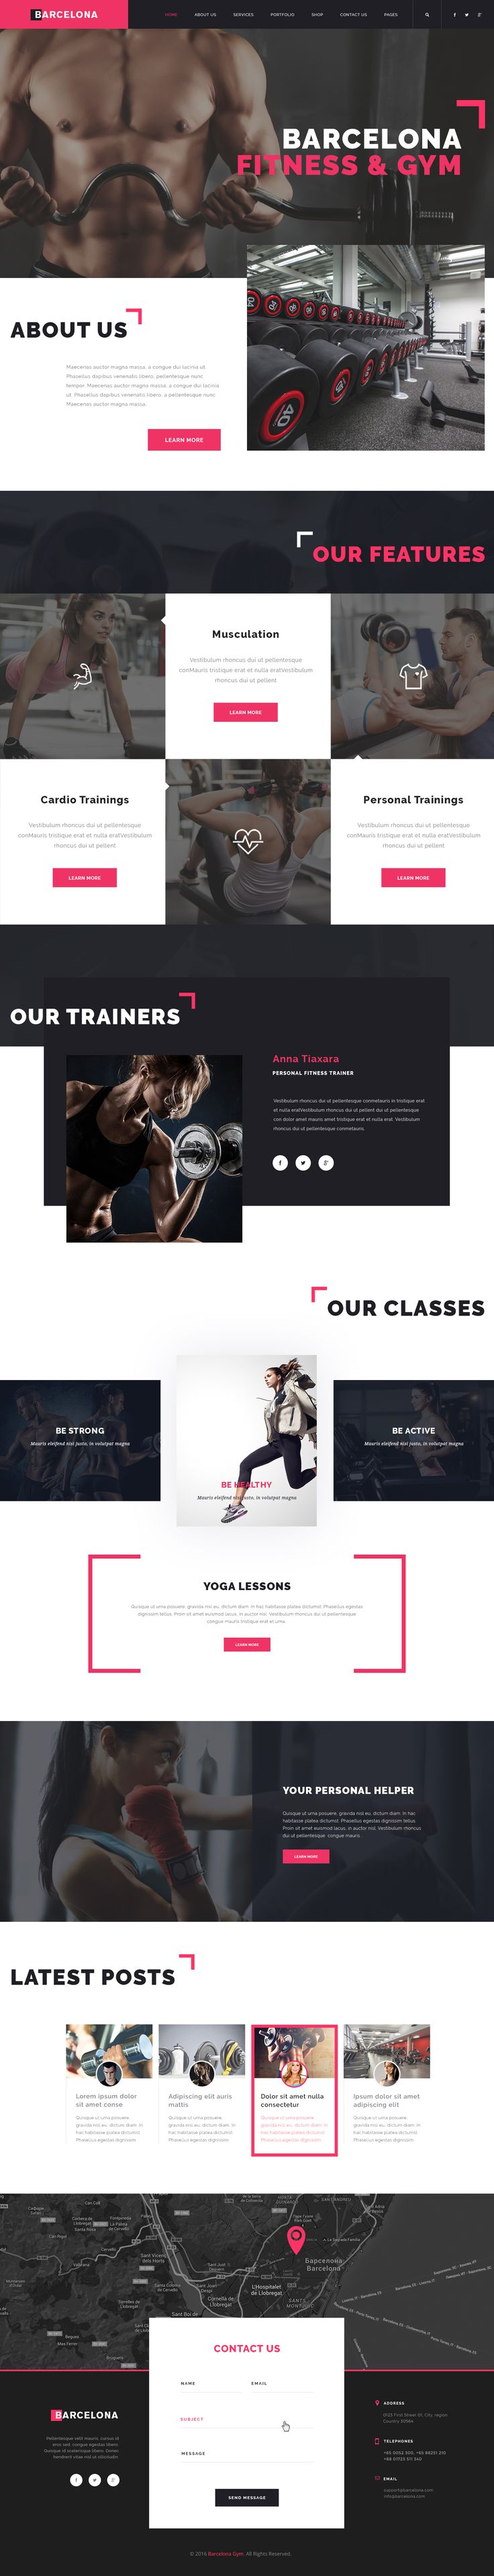 Barcelona is a clean, pixel perfect and modern PSD Template suitable for any type of Sport, Gym, Fitness Center, Health Clubs, Dance Studios and many more. Barcelona is designed according to the...